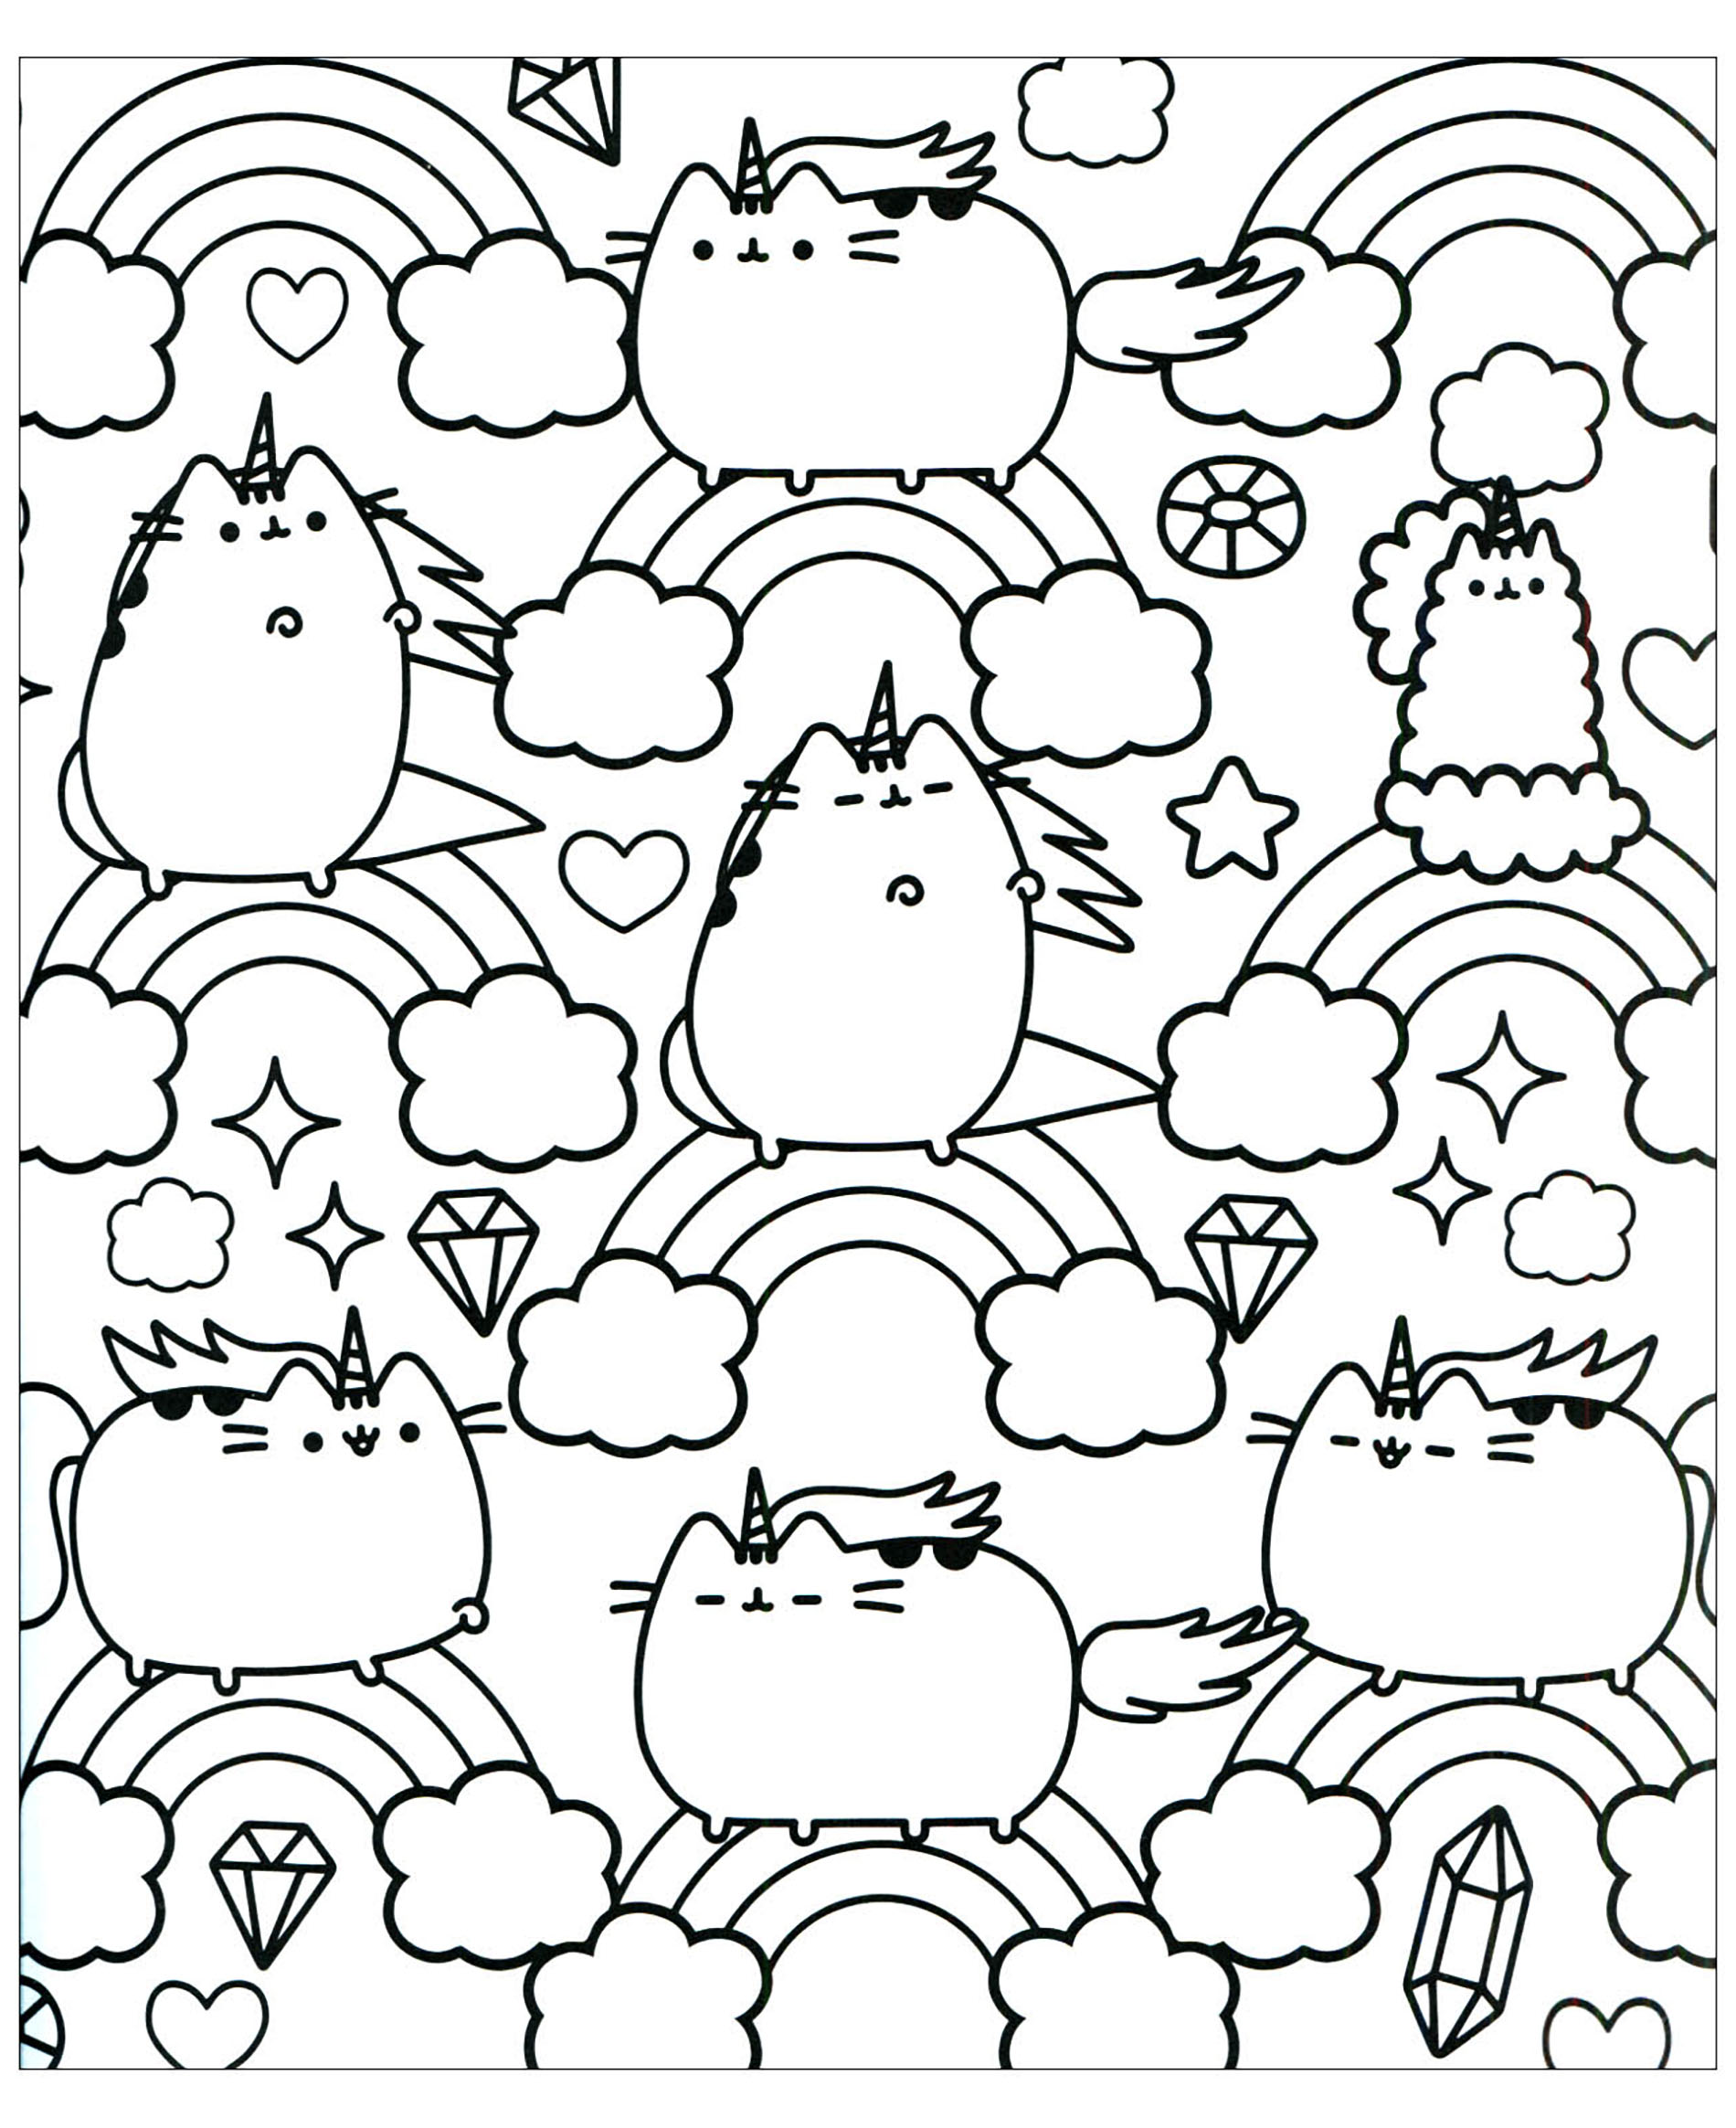 Pusheen to color for kids - Pusheen Kids Coloring Pages